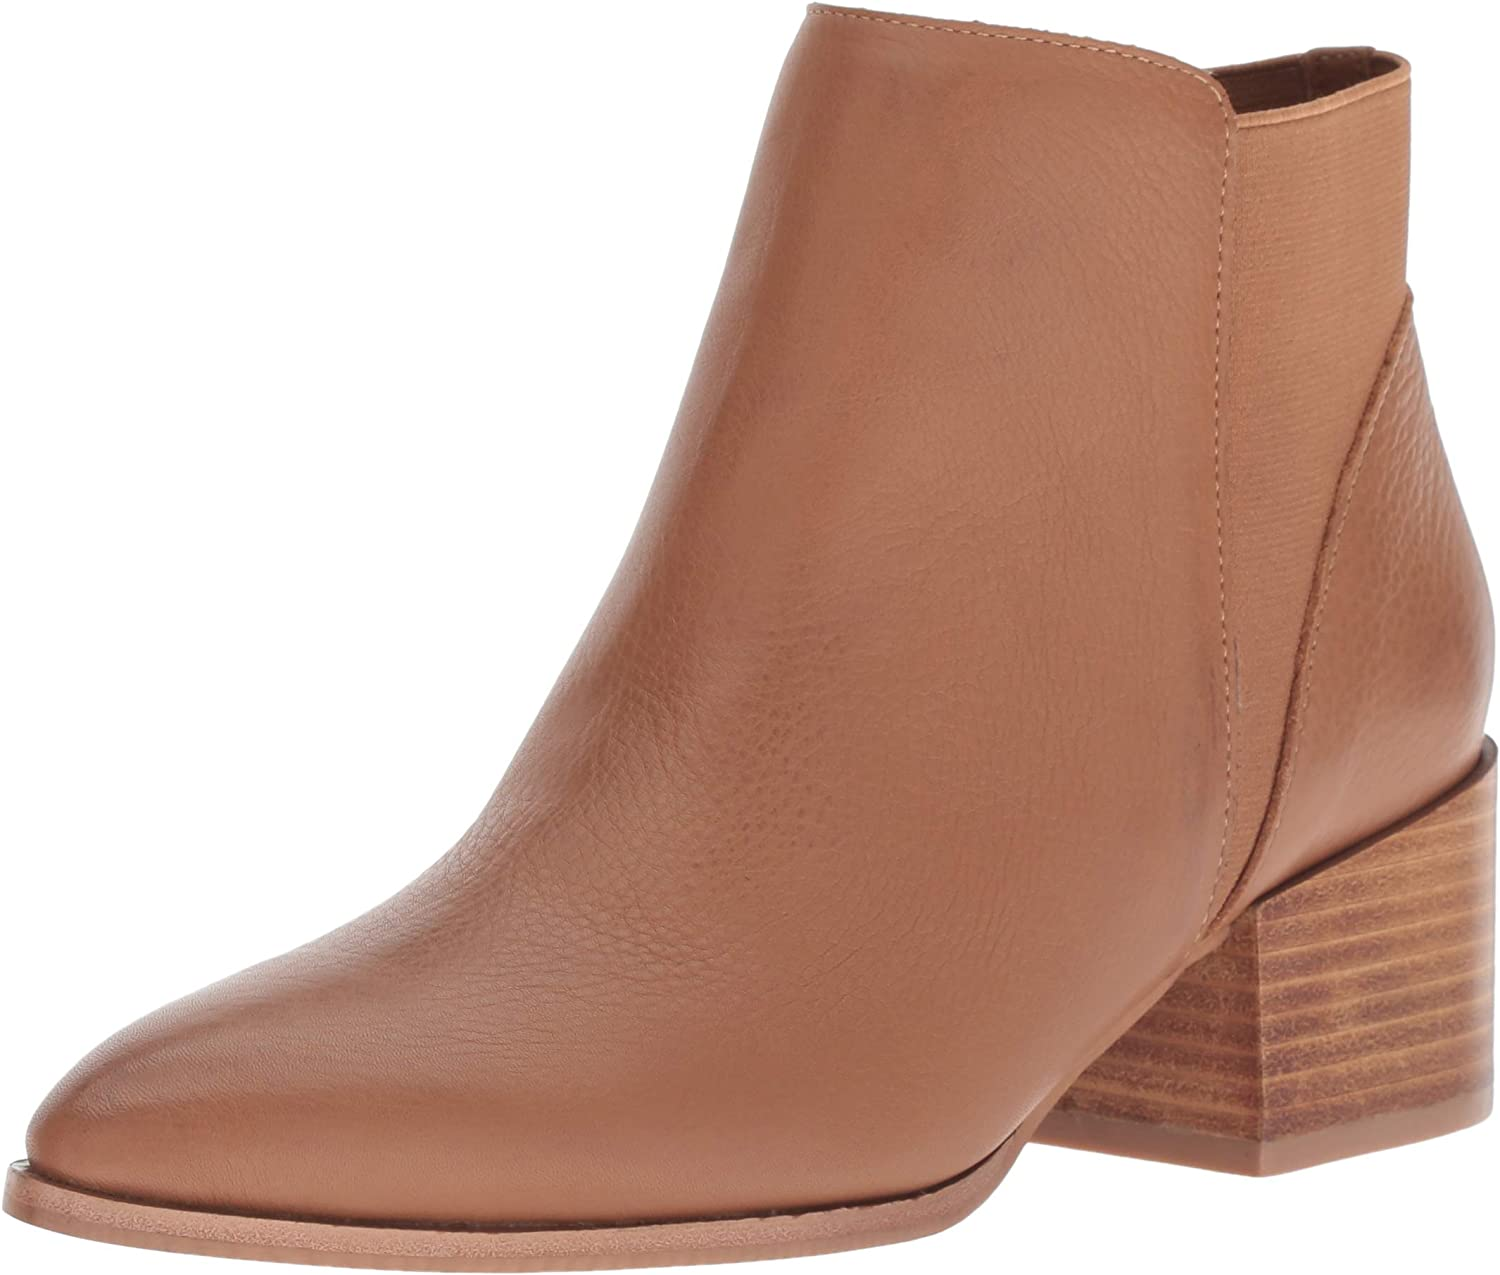 Chinese Laundry Women's Finn Ankle Bootie